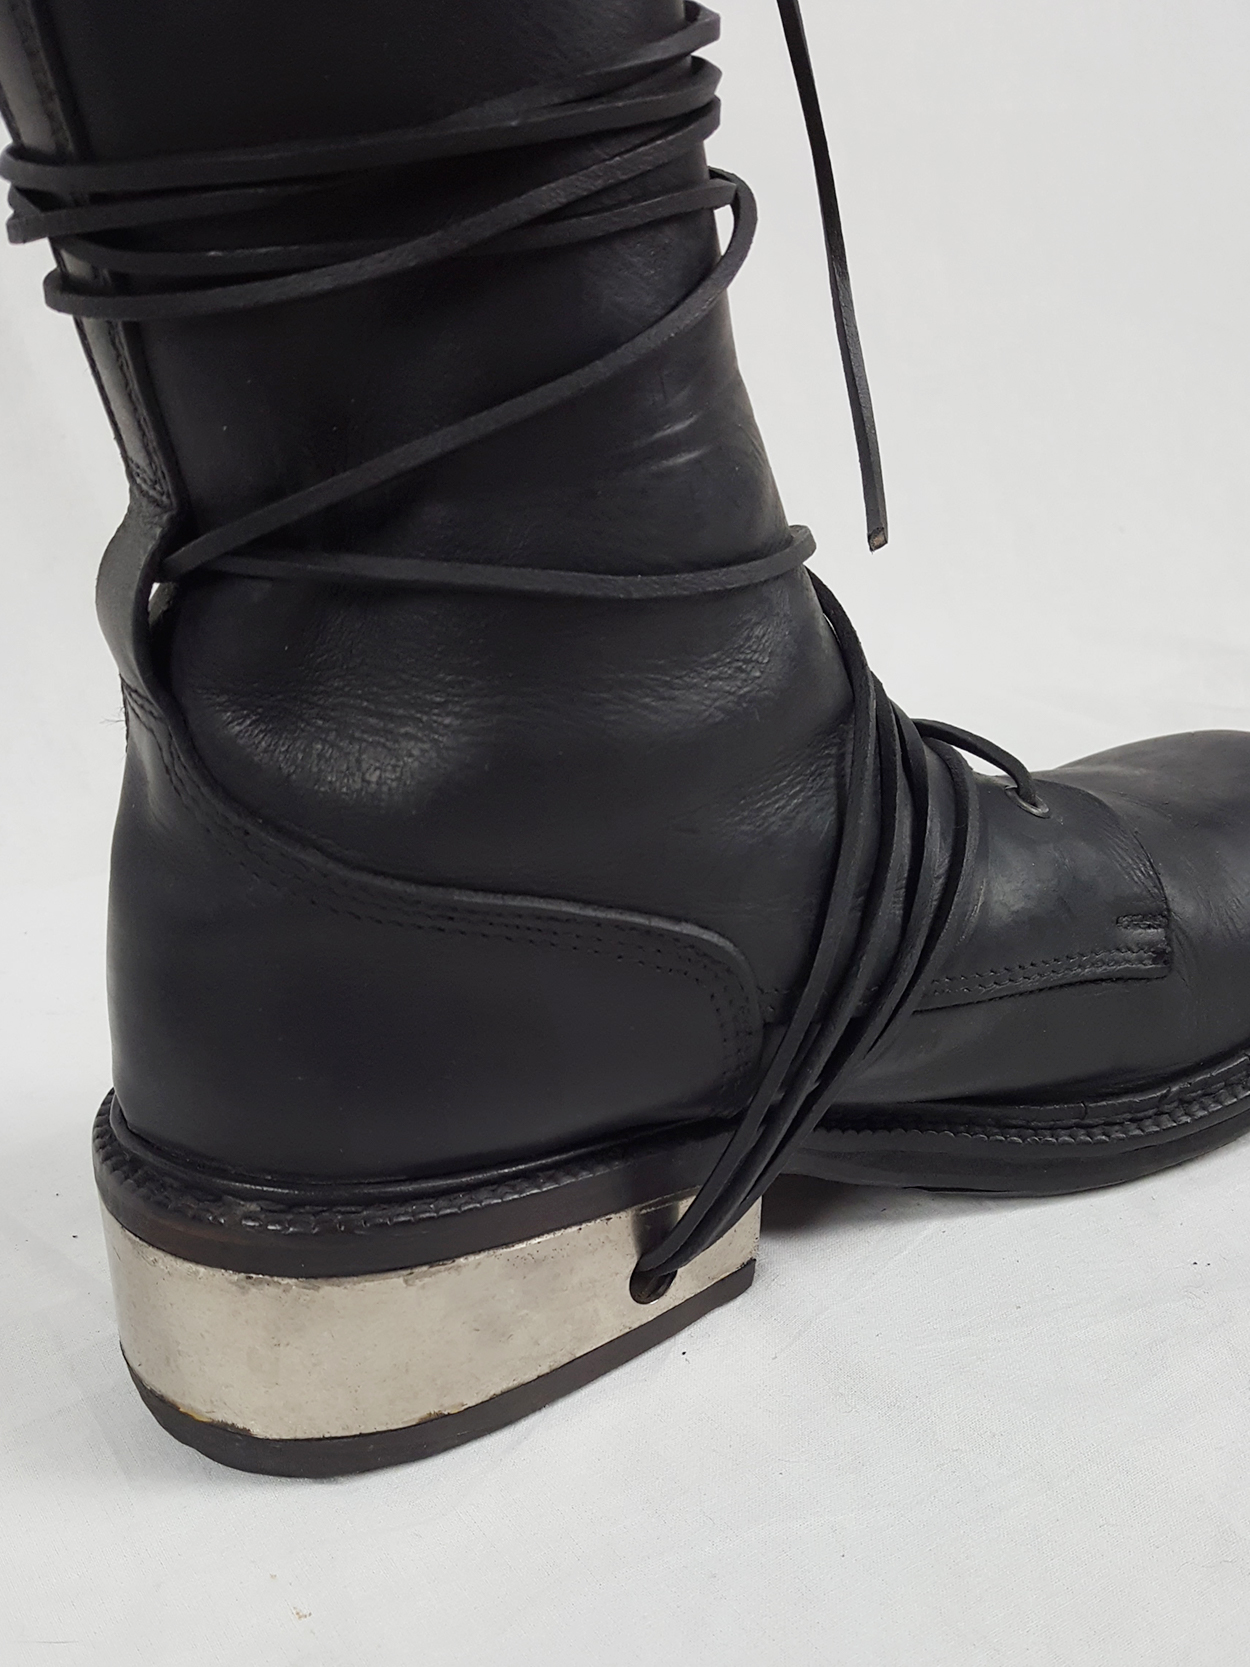 vaniitas vintage Dirk Bikkembergs black tall boots with laces through the metal heel 1990S 90S 175139(0)